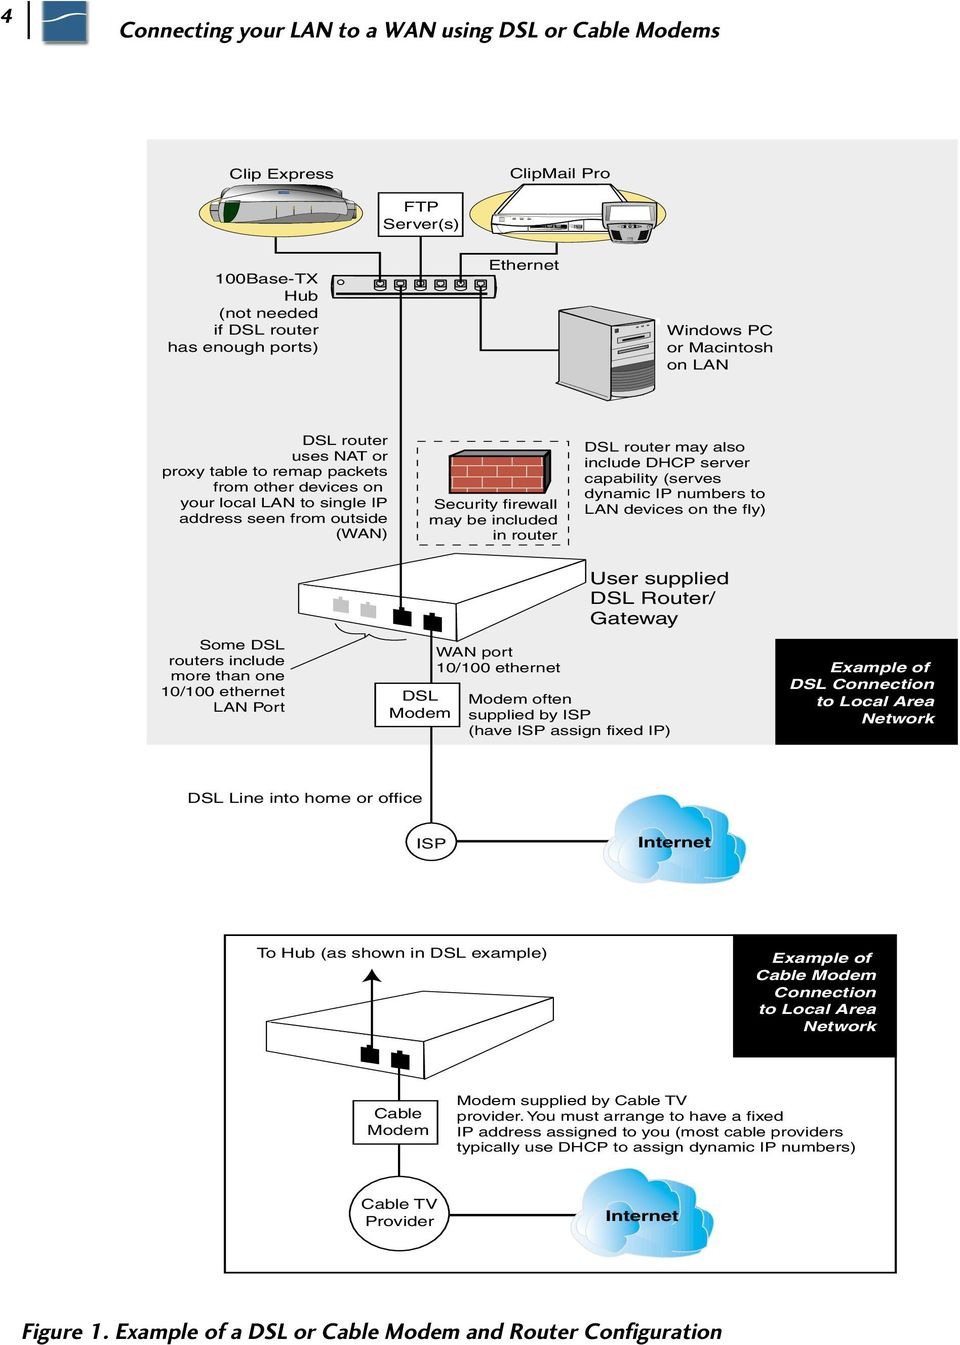 Application Note Connecting Your Lan To A Wan Using Dsl Or Cable Phone Wiring Basics May Be Included In Router Also Include Dhcp Server Capability Serves Dynamic